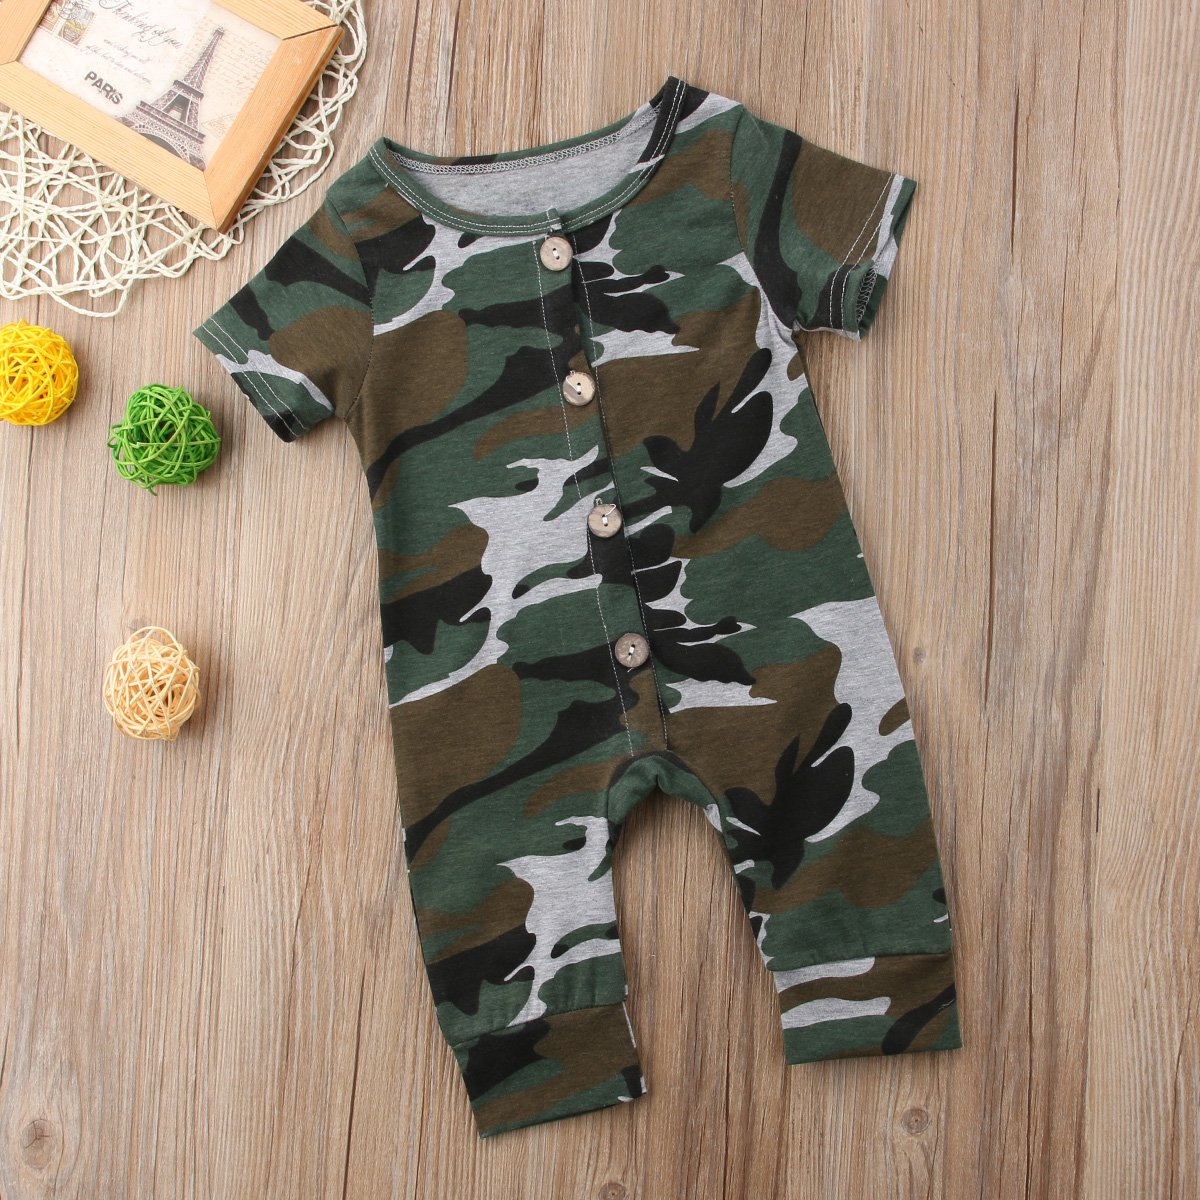 Newborn Kids Baby Boys Cute Solid Color Long Sleeve Hooded Romper Jumpsuit Top Outfits Clothes